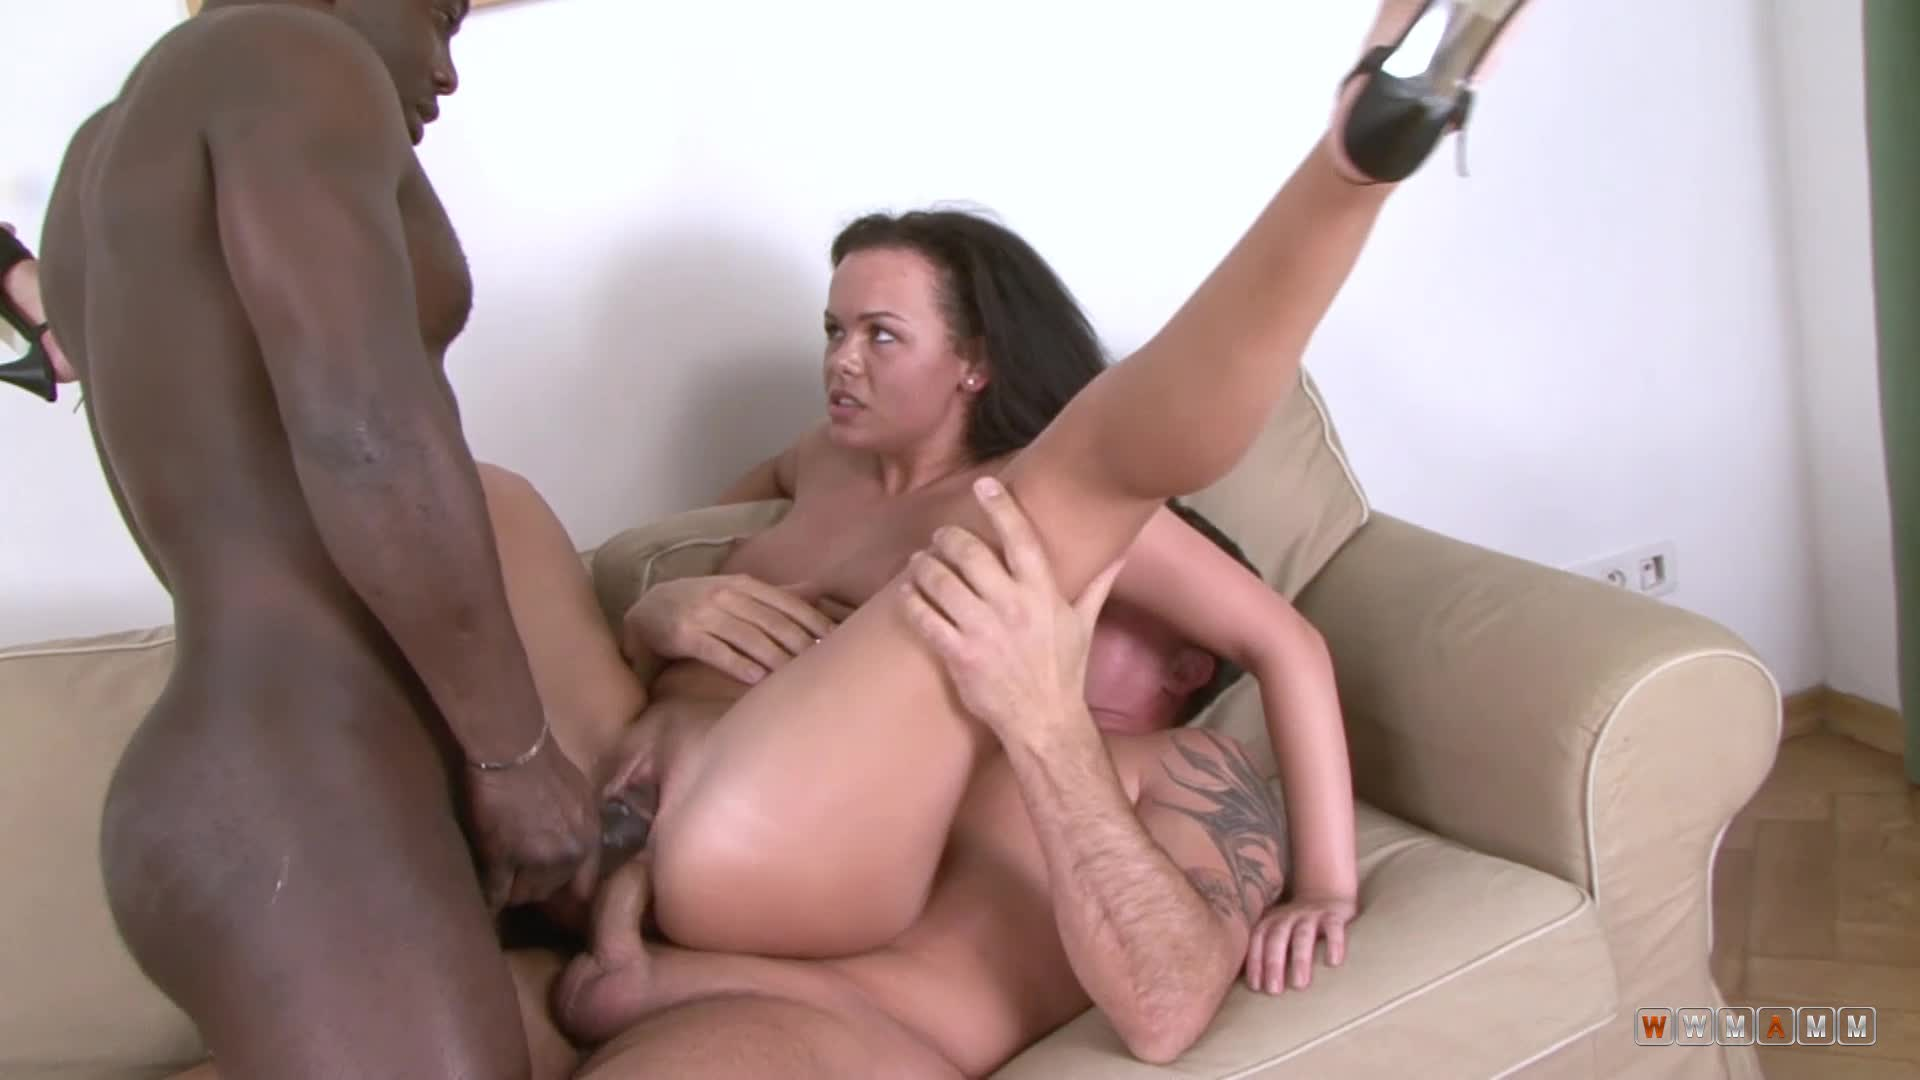 Her Nice Slippery Ass Got Destroyed By Two Very Hard Cocks